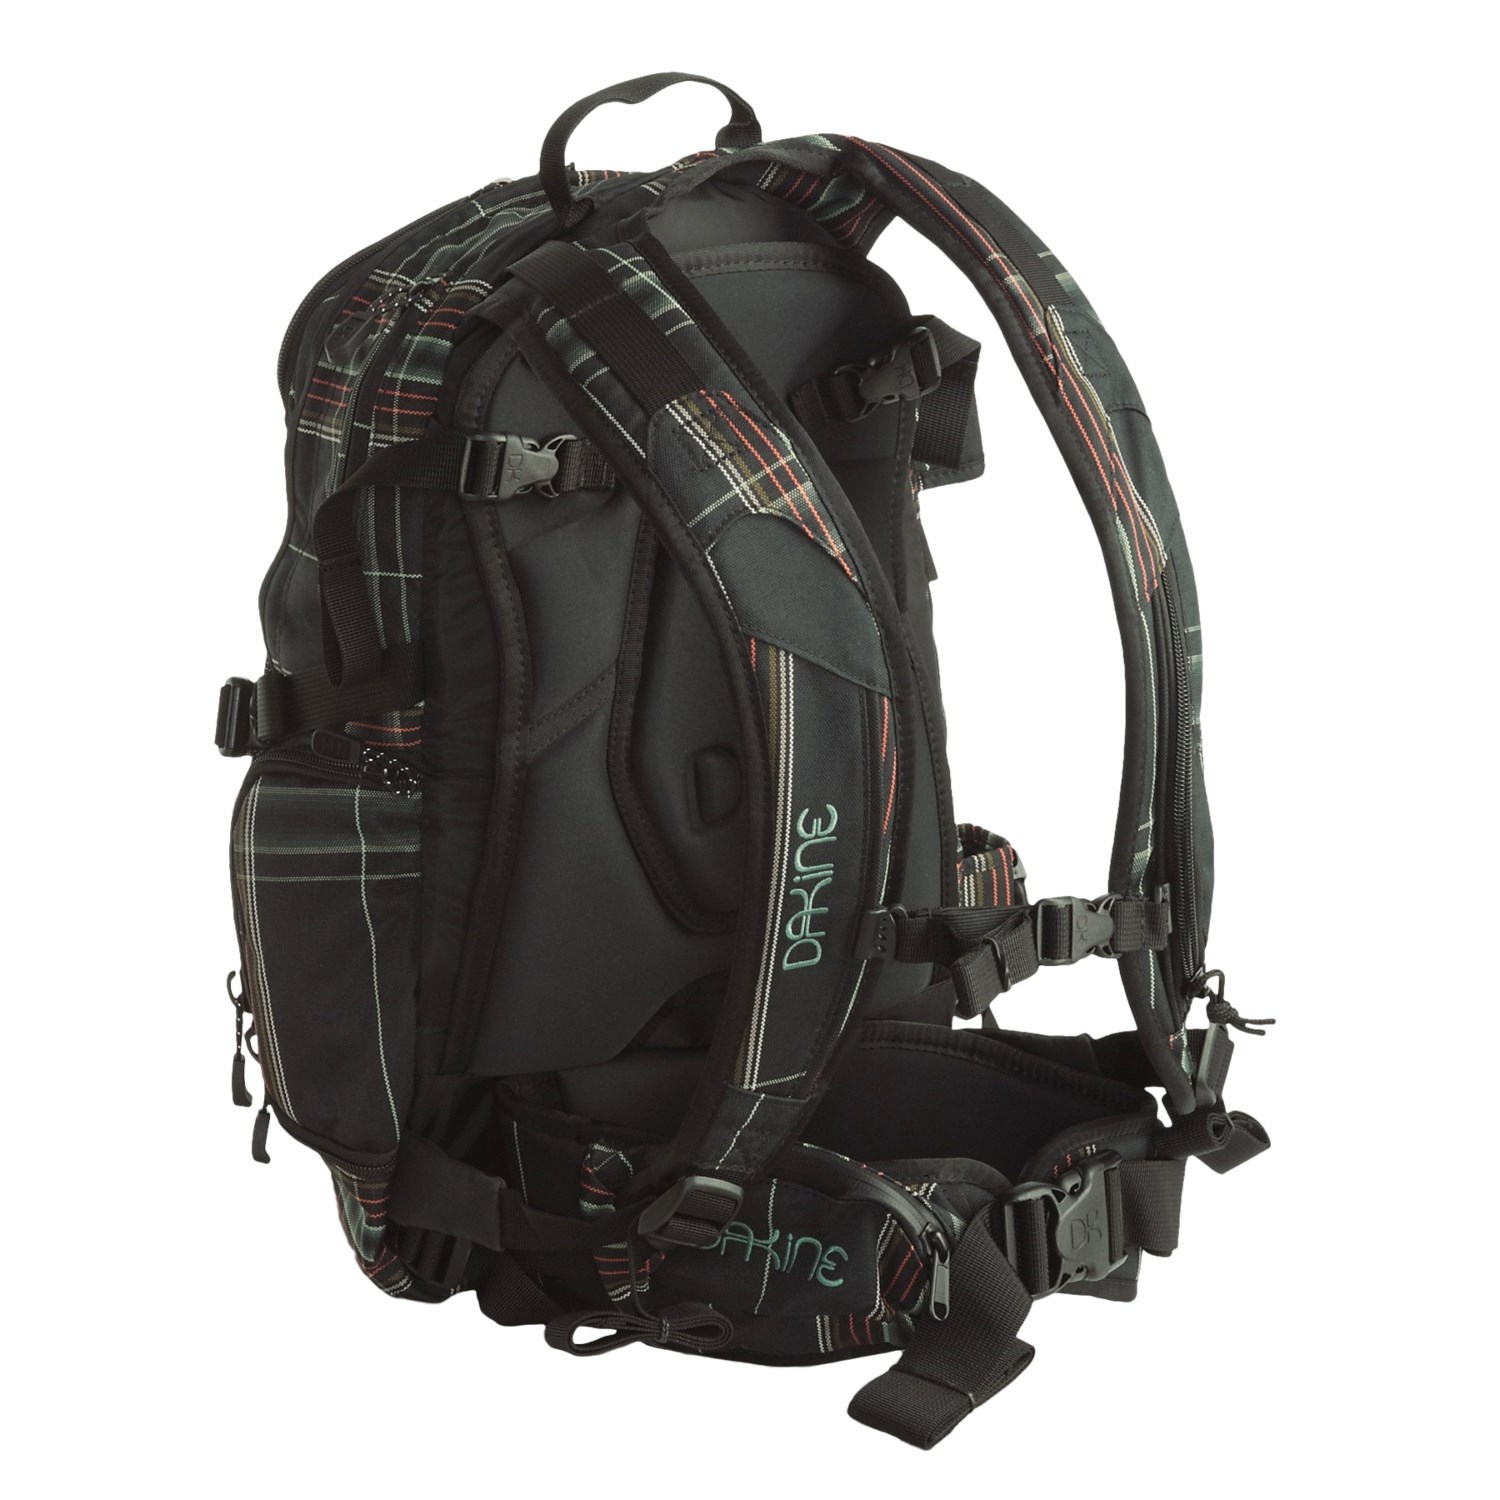 dakine heli pro dlx 18l with  on 15268 Cheap Dakine Heli Pro Backpacks moreover Womens Heli Pro Dlx 18l Backpack Black Ripstop together with Dakine Girls Heli Pro Dlx 18l Vista furthermore Ryukzak Dakine Womens Heli Pro Dlx 18l Black furthermore Dakine Leanne Pelosi Team Heli Pro Dlx 18l Backpack.